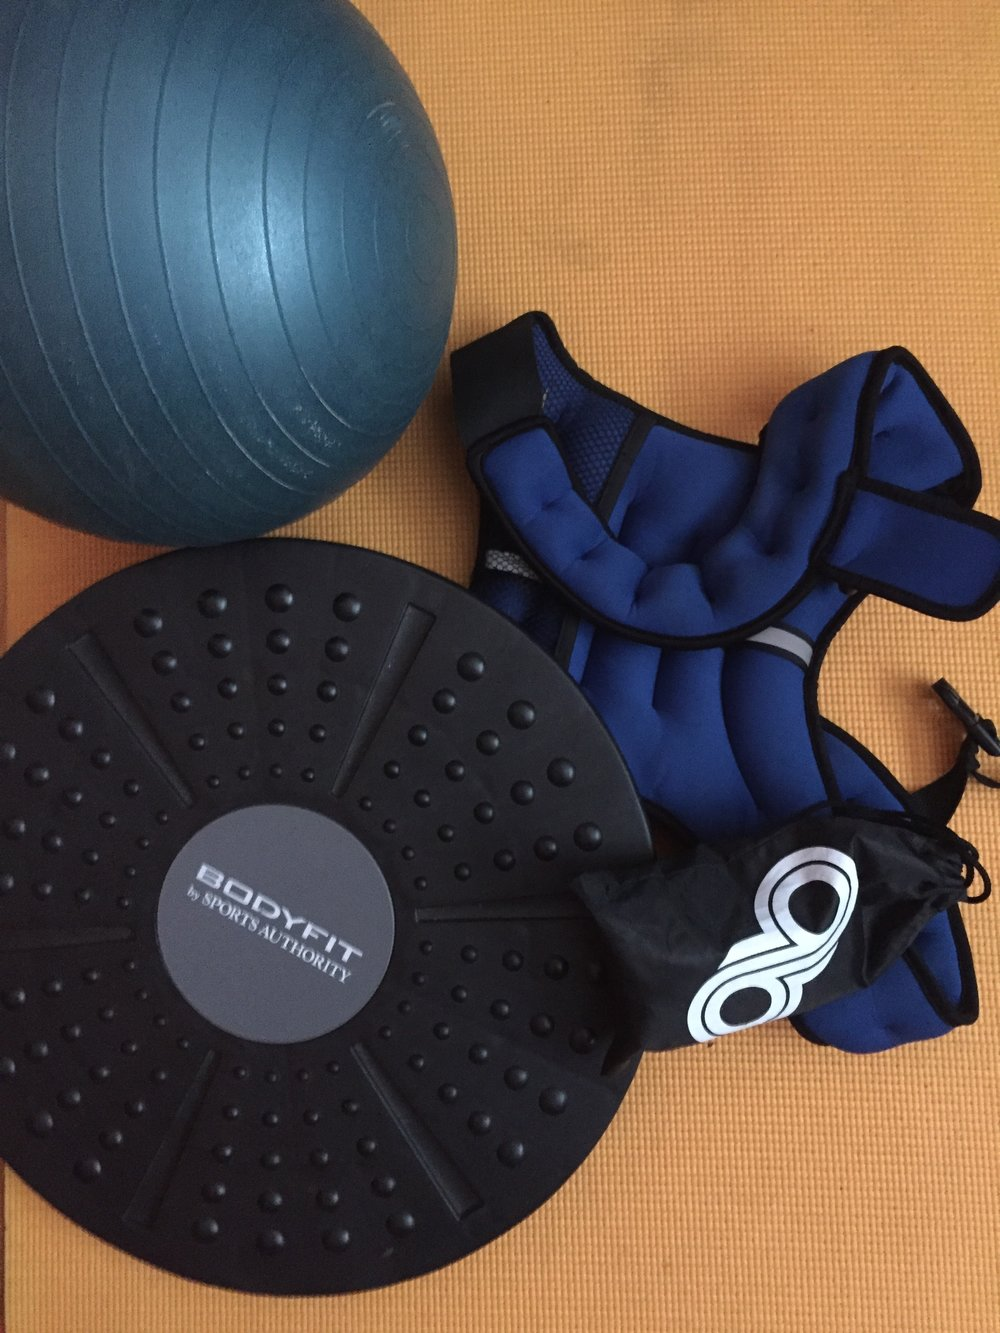 My gear for working out indoors when it's freezing out. A medicine ball, weight vest, balance board, stretch bands, and of course yoga mat. Tools for glute and core work. Simple and effective. When I do my outside workout it's pretty much the same tools, but I also use a battle rope and pull up bar. Maybe some rock rings too.